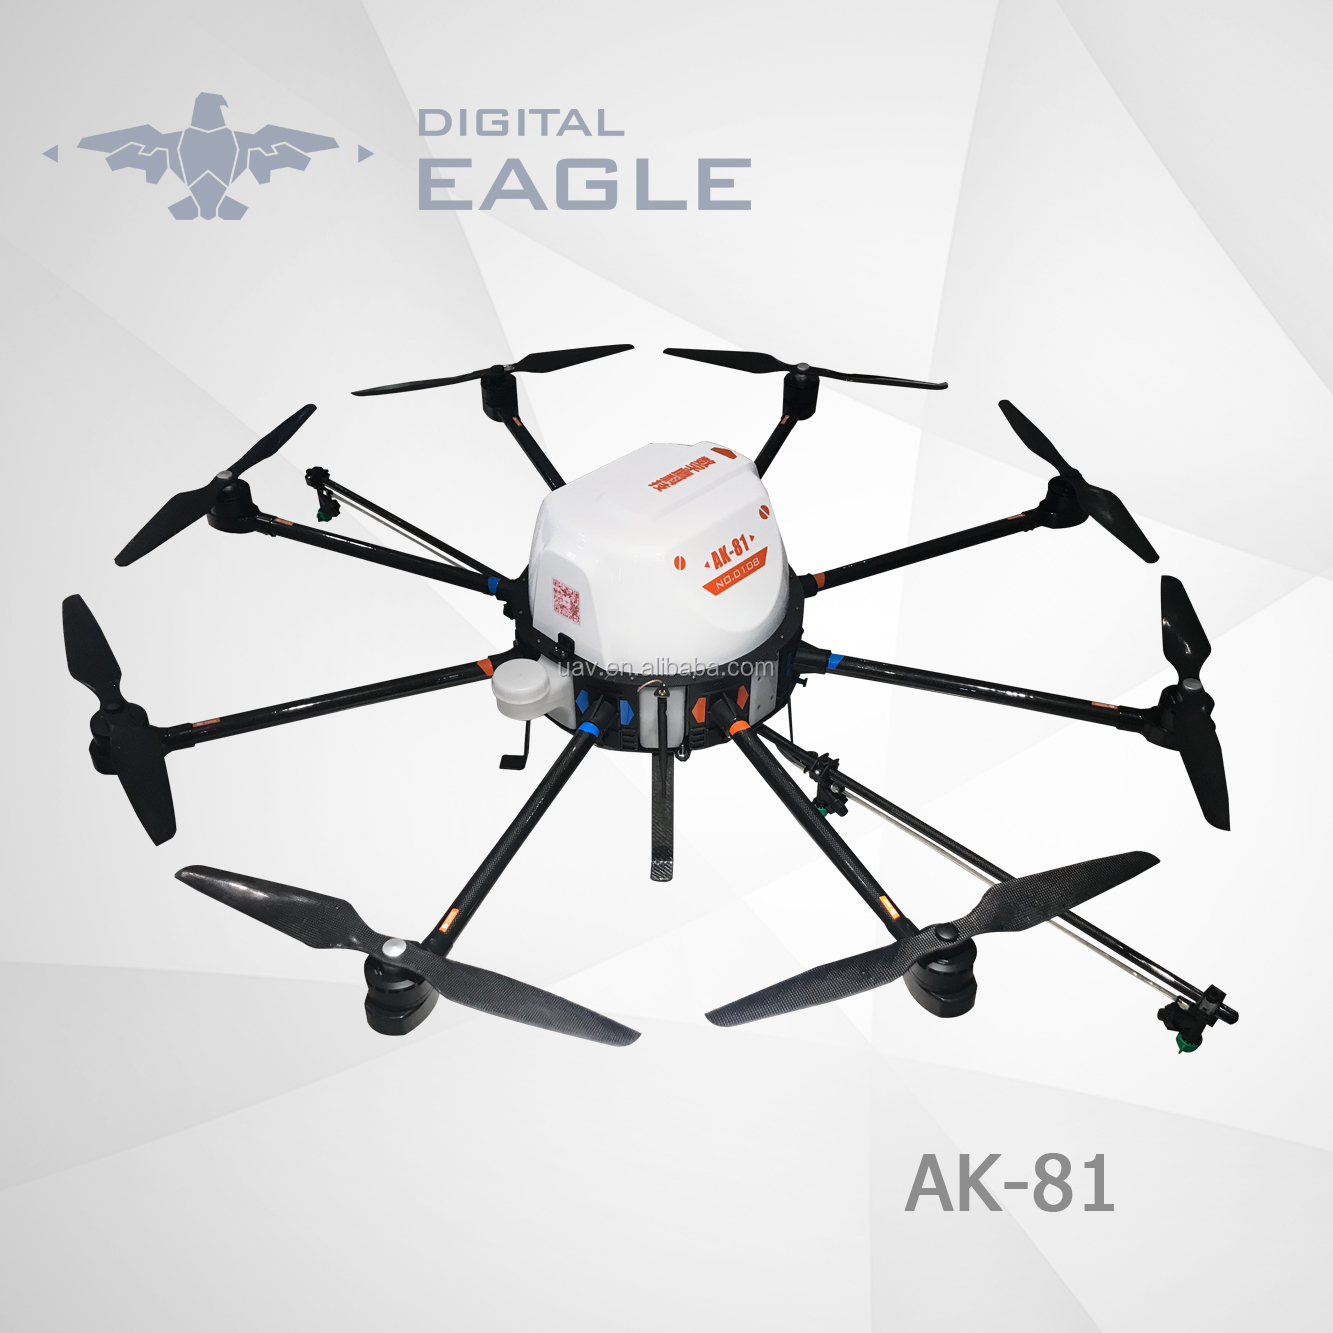 De Ak-81 15l Drone High Power With Gps Automatic Programming Agriculture  Drone Price Crop Uav Sprayer - Buy De Ak-81 15l Drone High Power With